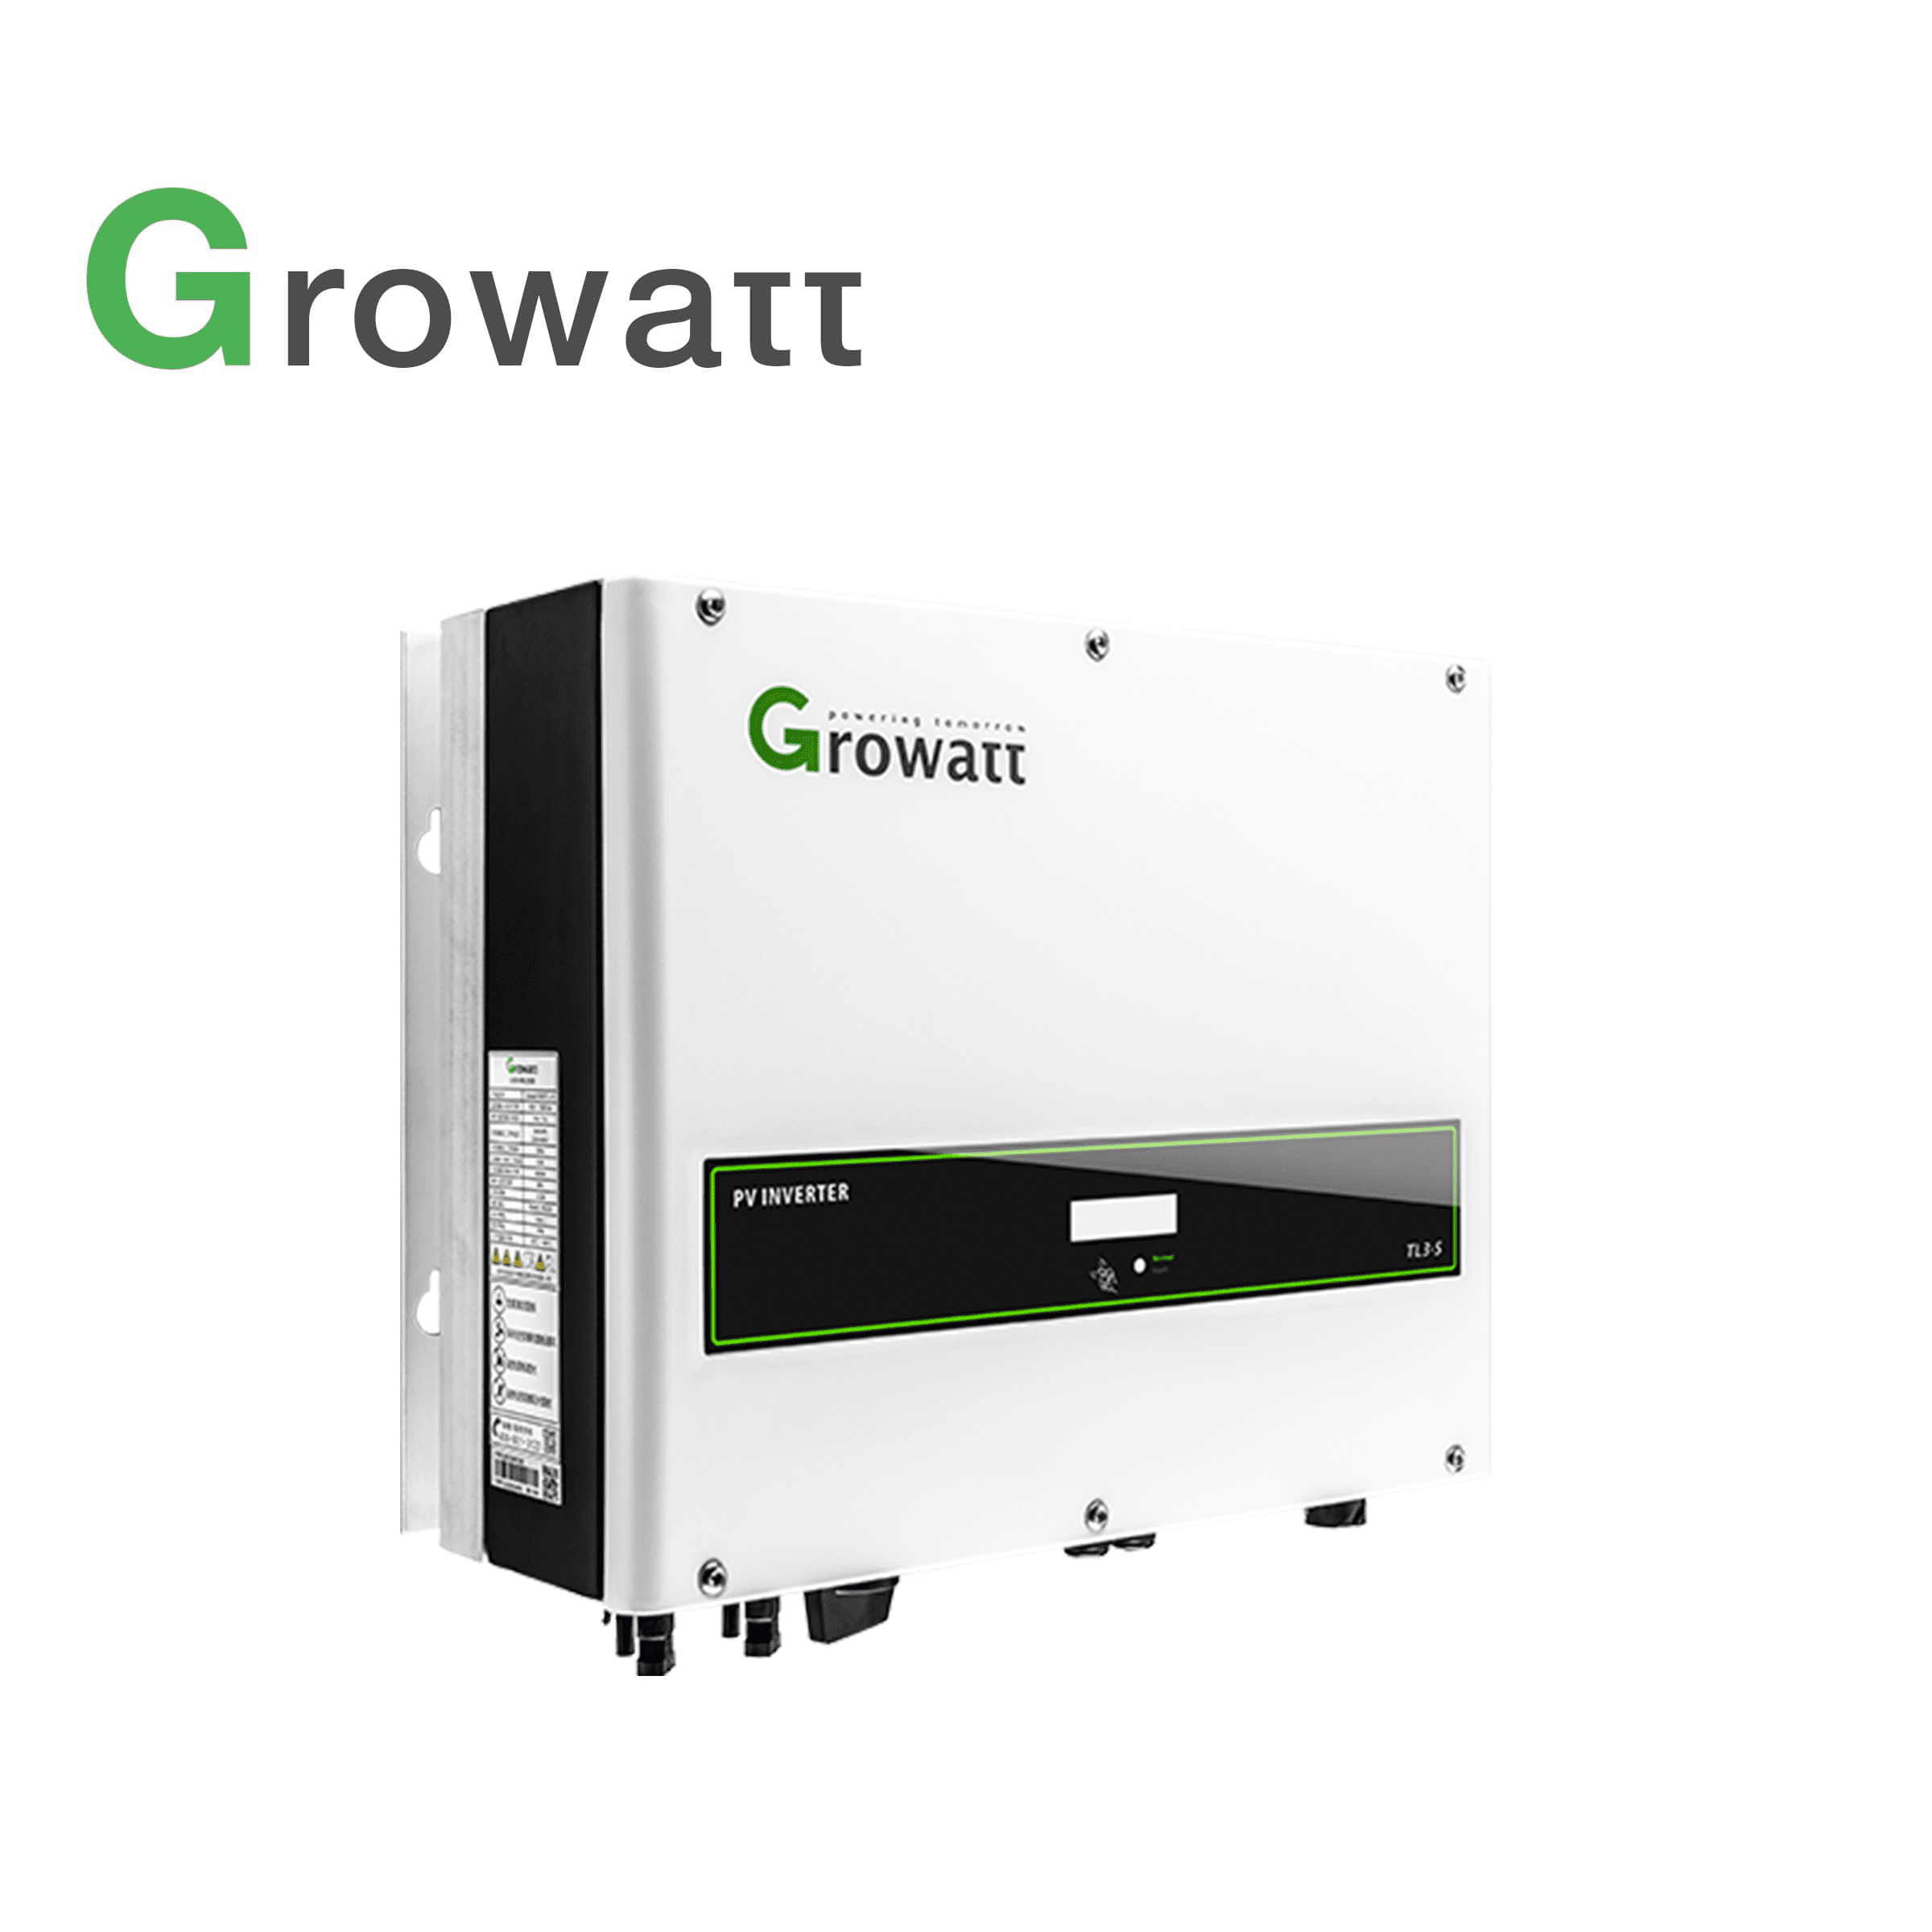 Growatt 6 kilwatt 3 phase inverter